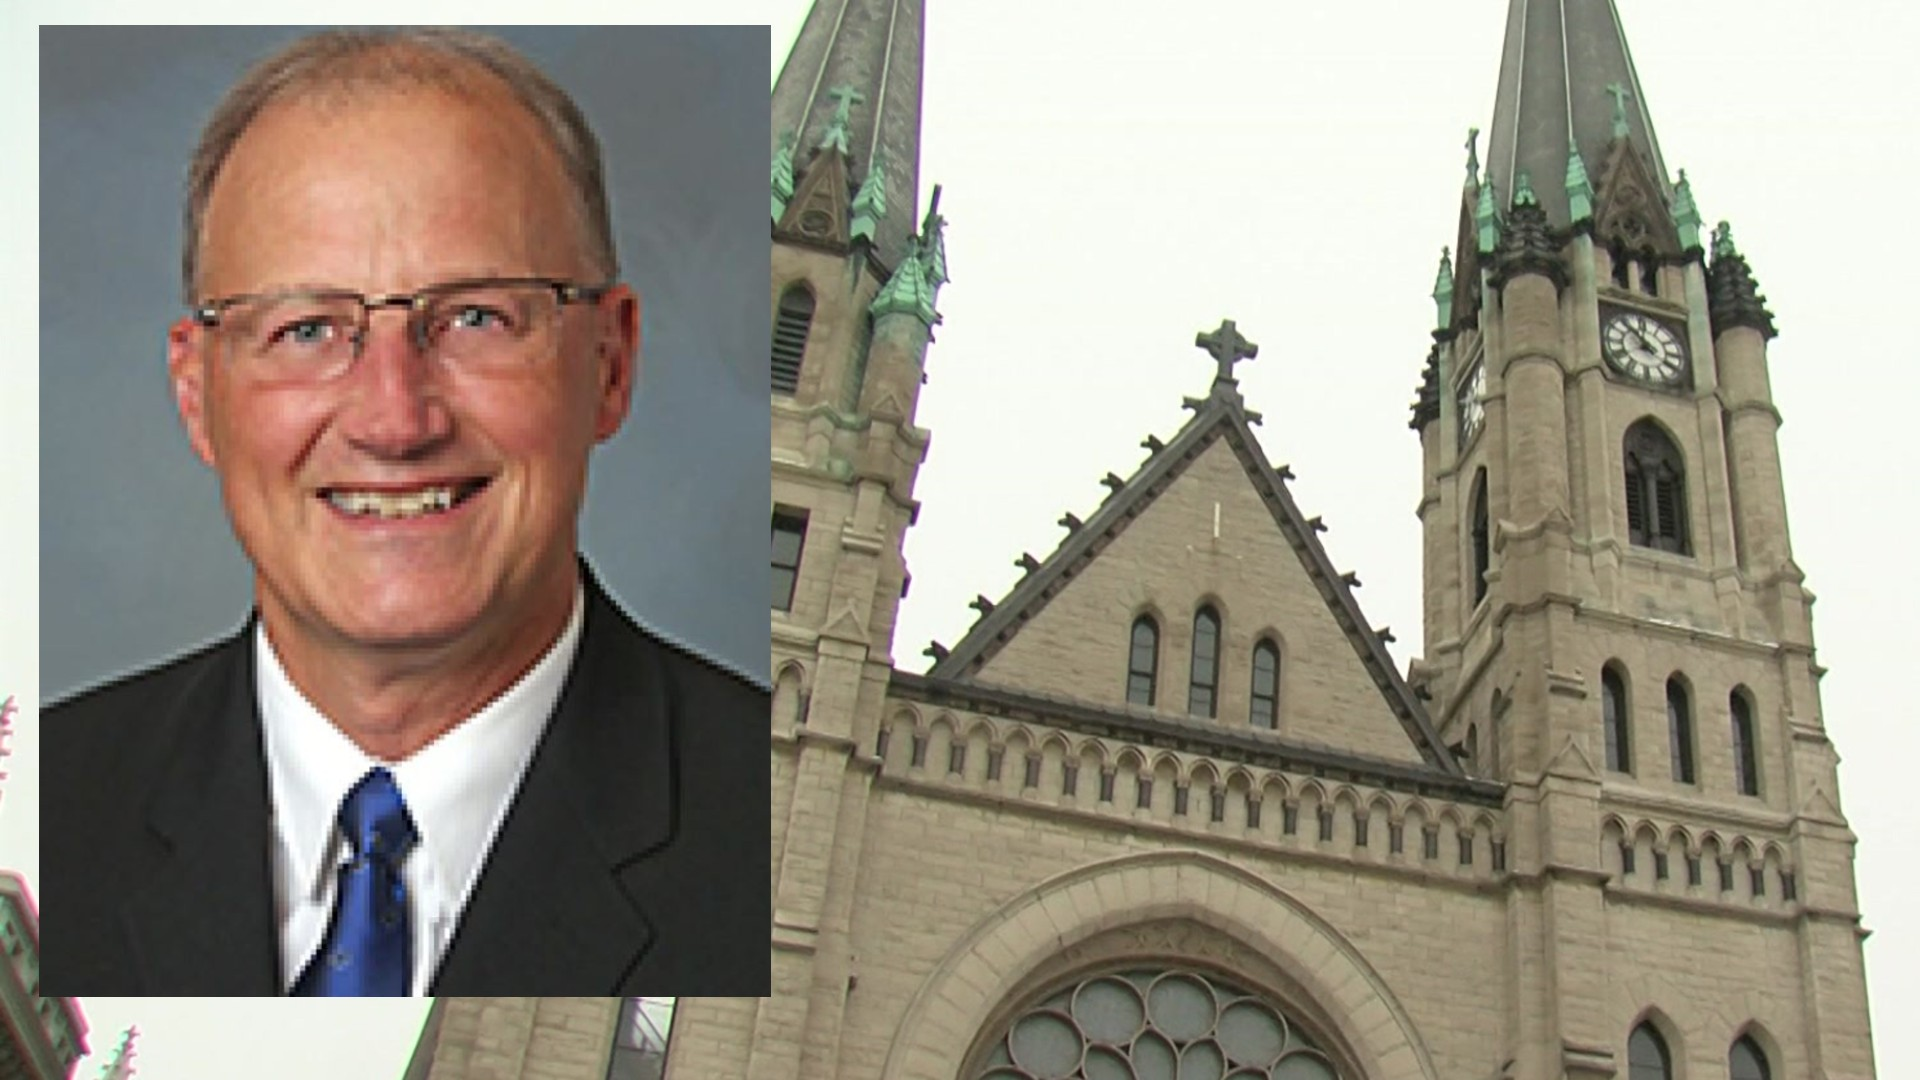 Funeral services held for MU business school dean struck by driver